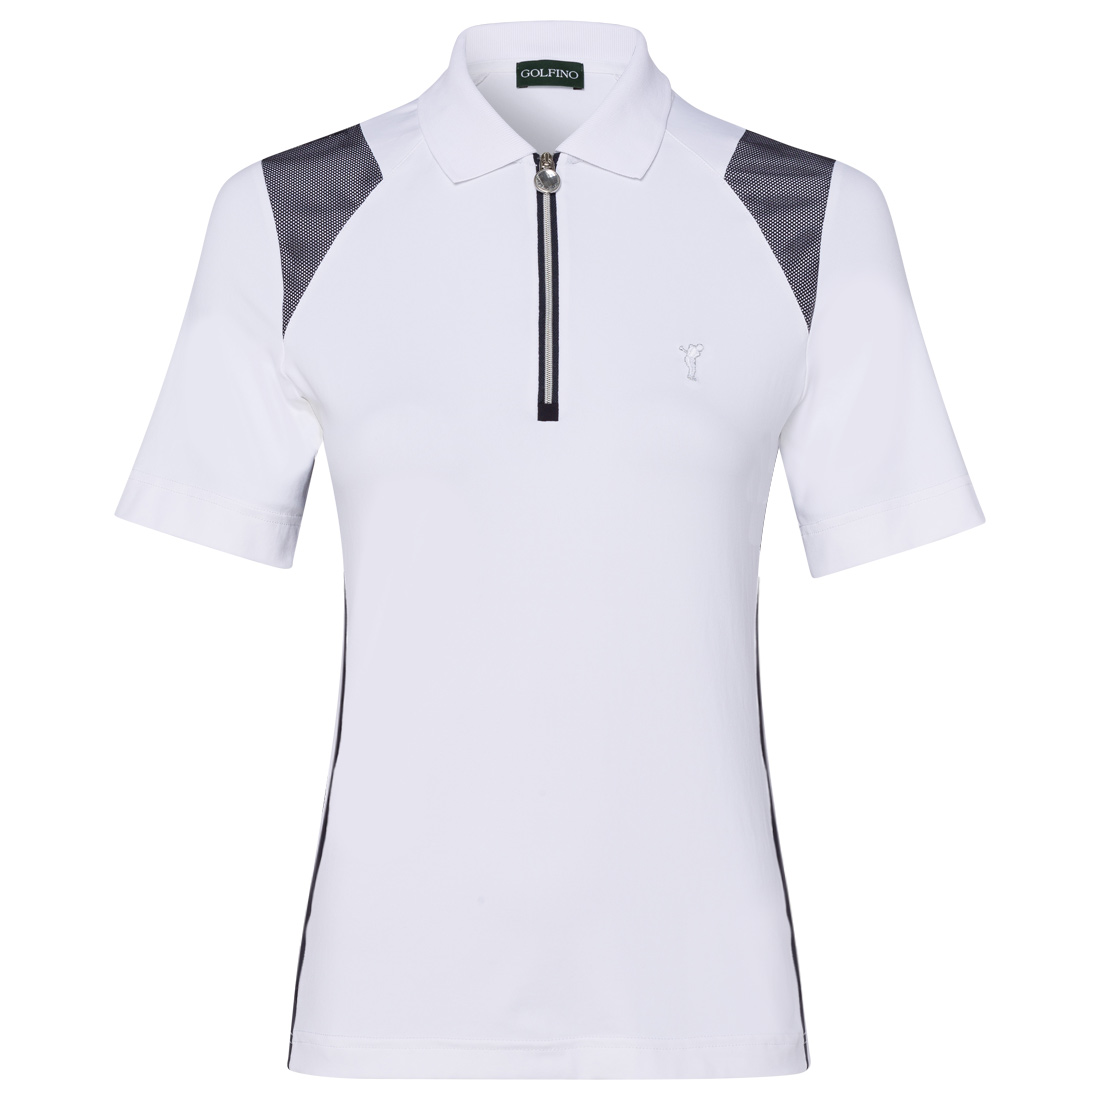 Ladies' polo with mesh inserts